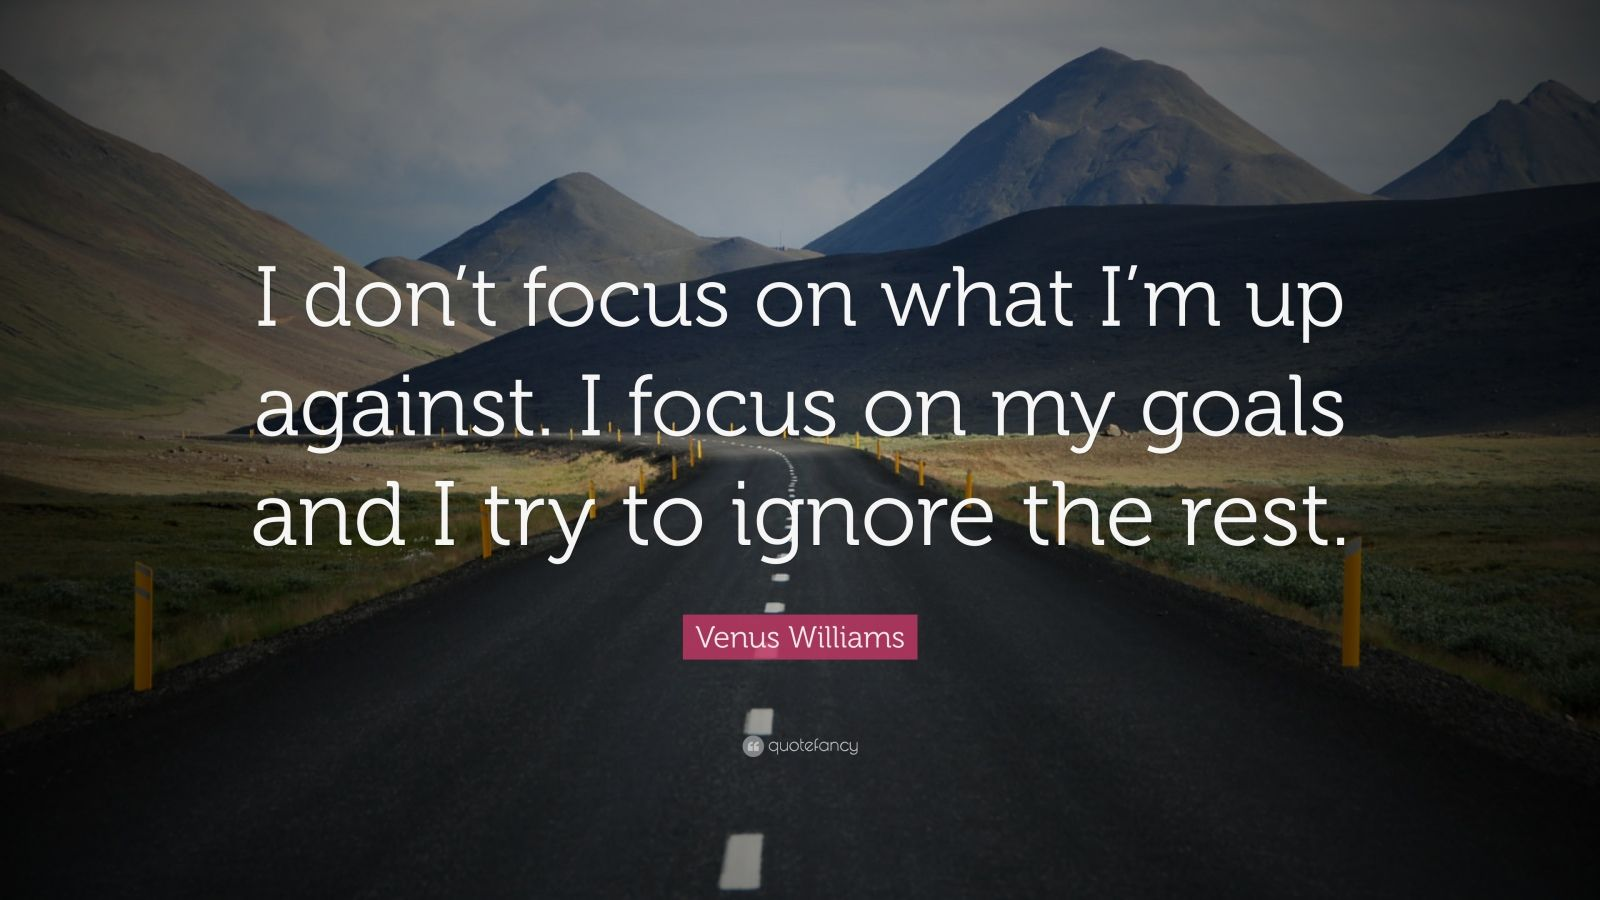 startup quotes quotefancy startup quotes i don t focus on what i m up against